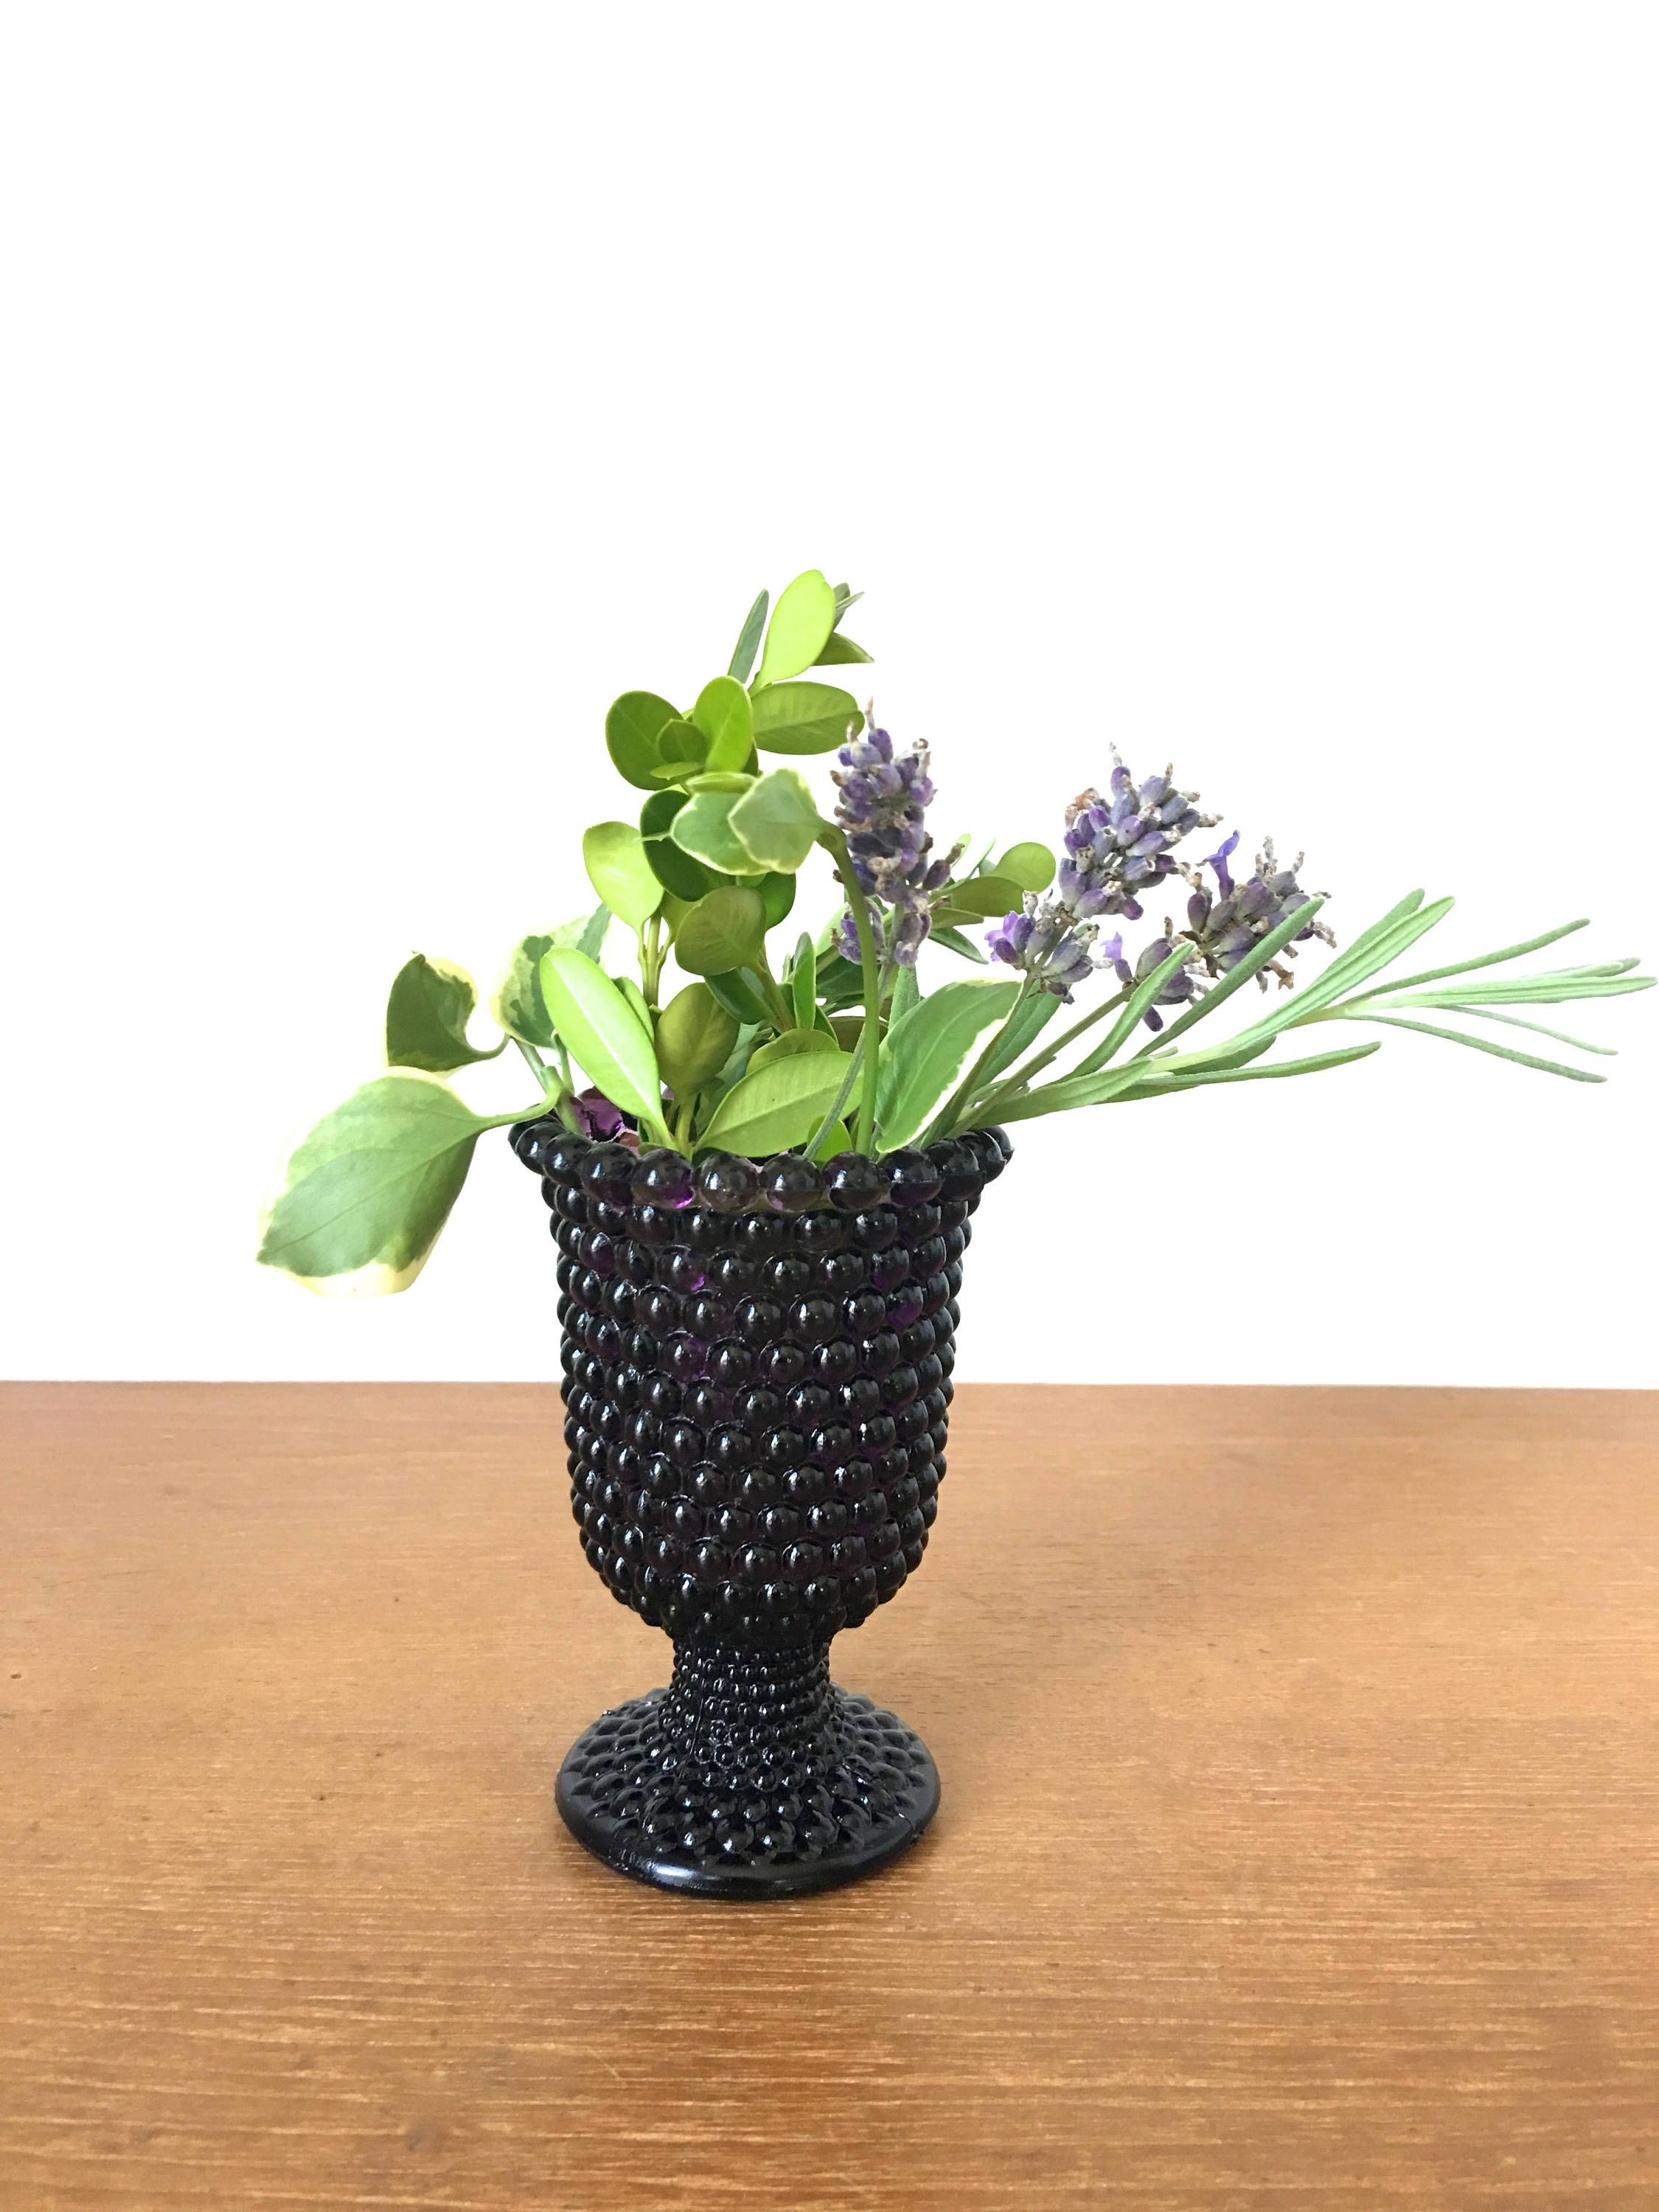 amethyst glass vase of amethyst glass hobnail vase votive holder by sweetpotatojack on throughout amethyst glass hobnail vase votive holder by sweetpotatojack on etsy